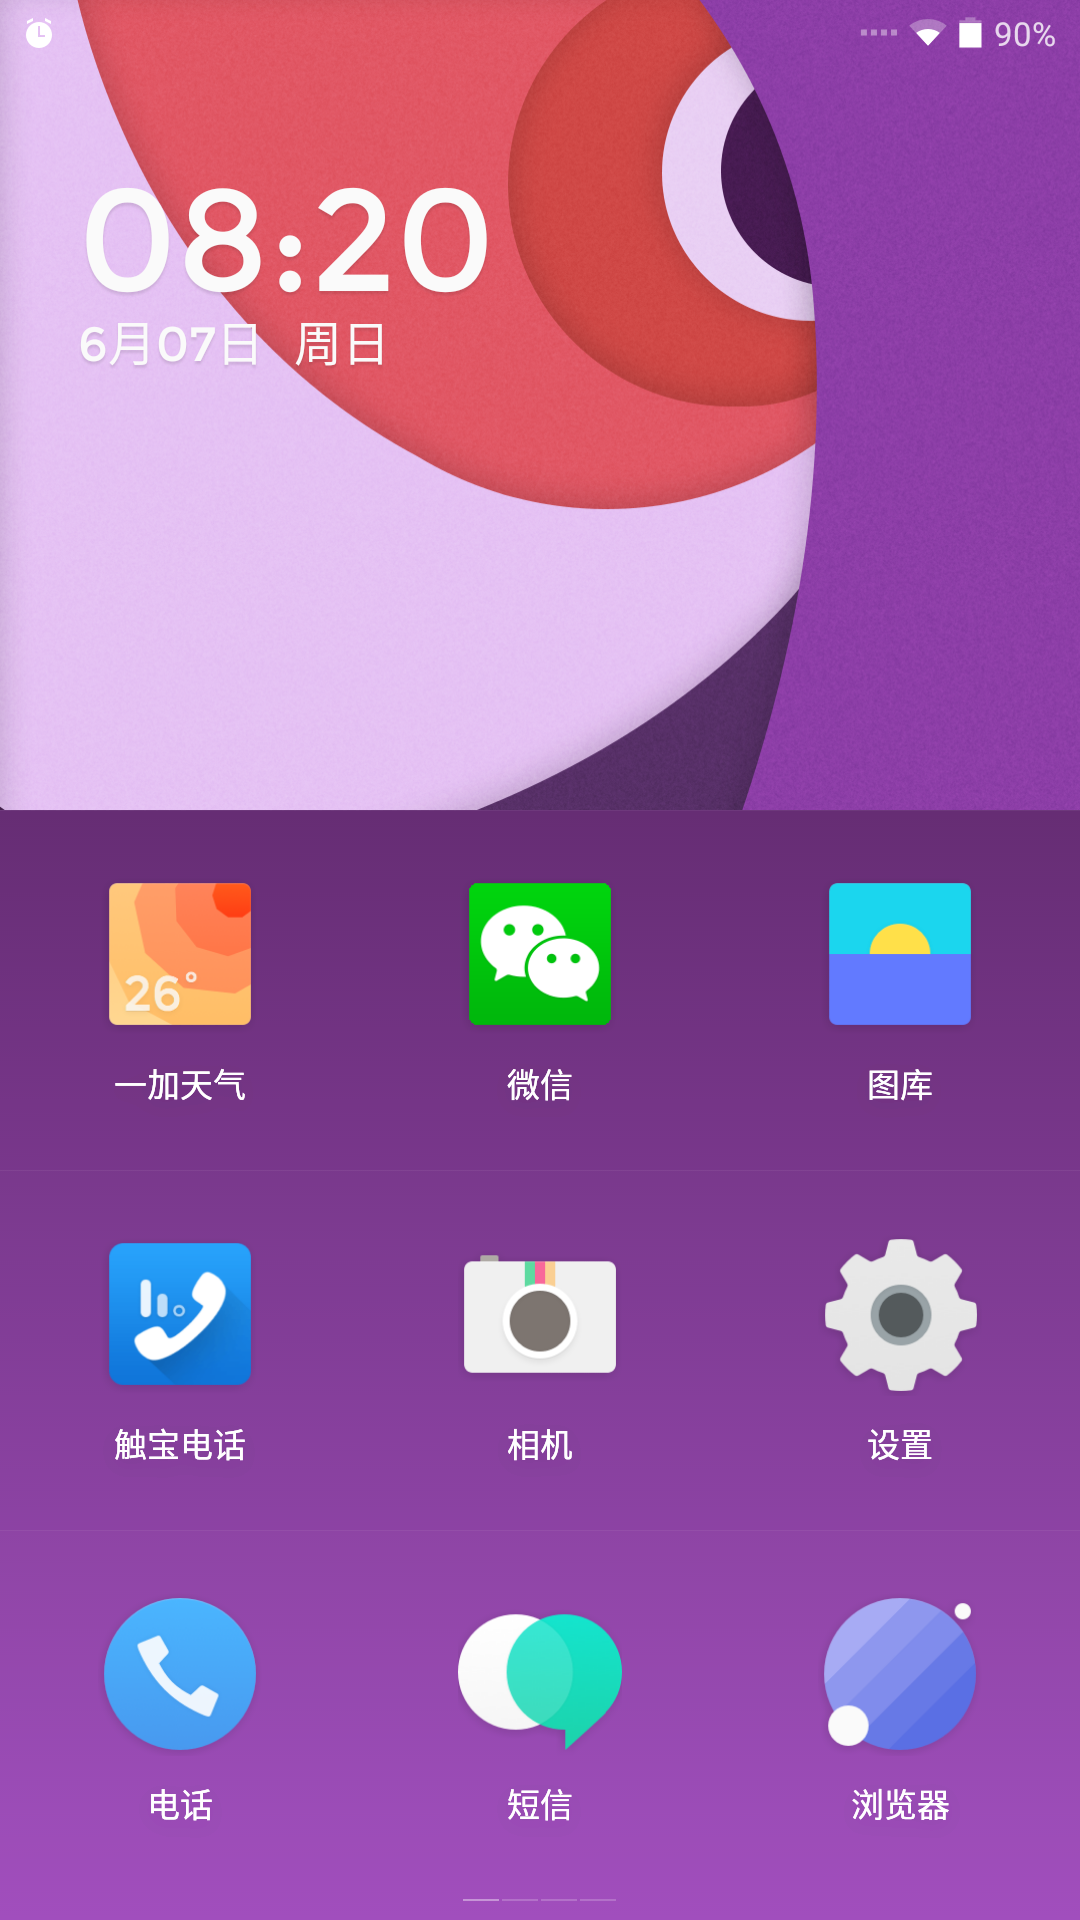 Screenshot_2015-06-07-08-20-33.png